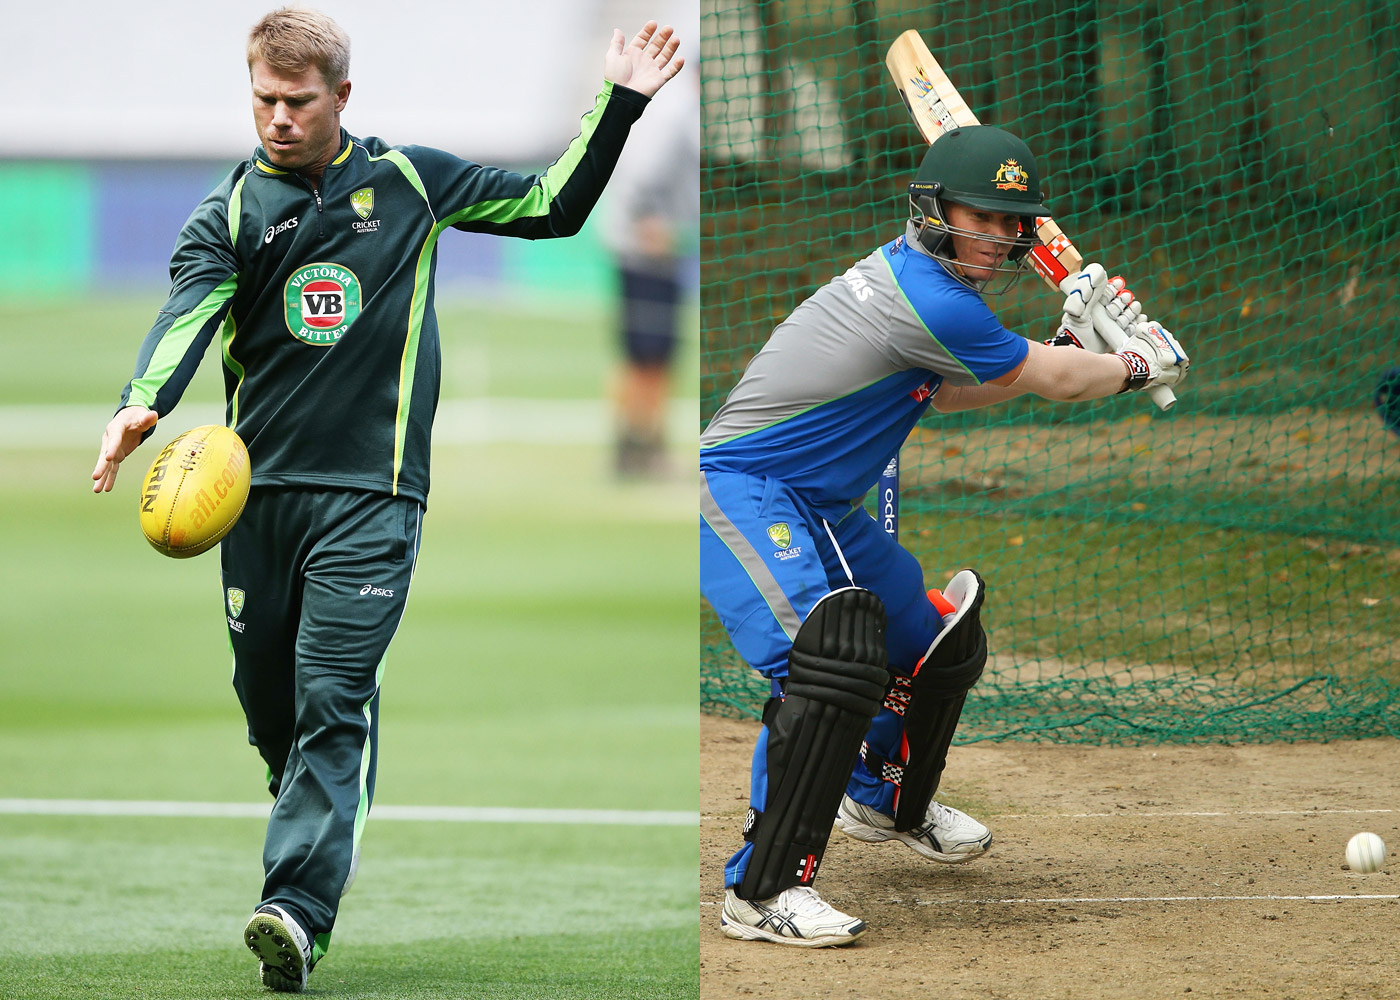 David Warner prefers kicking a football with his dominant right leg but favours his left while batting